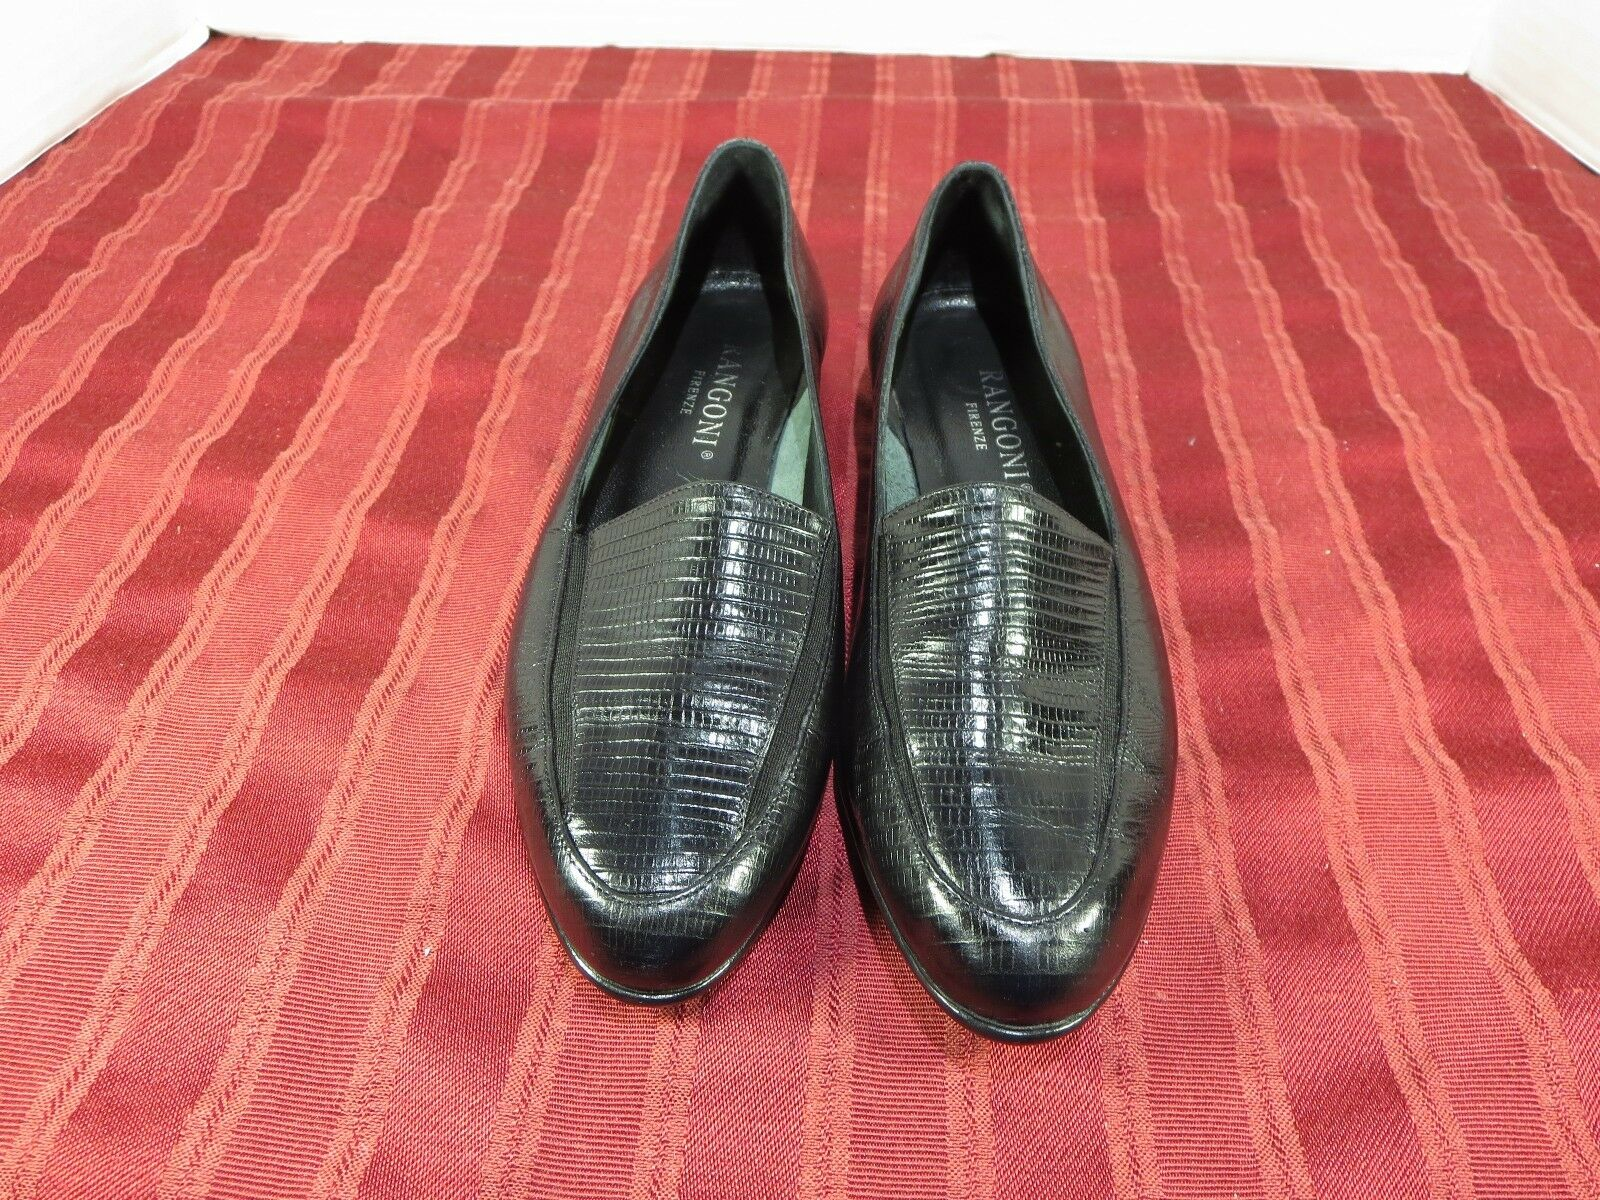 Rangoni Firenze Loafers Black Reptile Leather Fashion Casual Women Size 5.5B